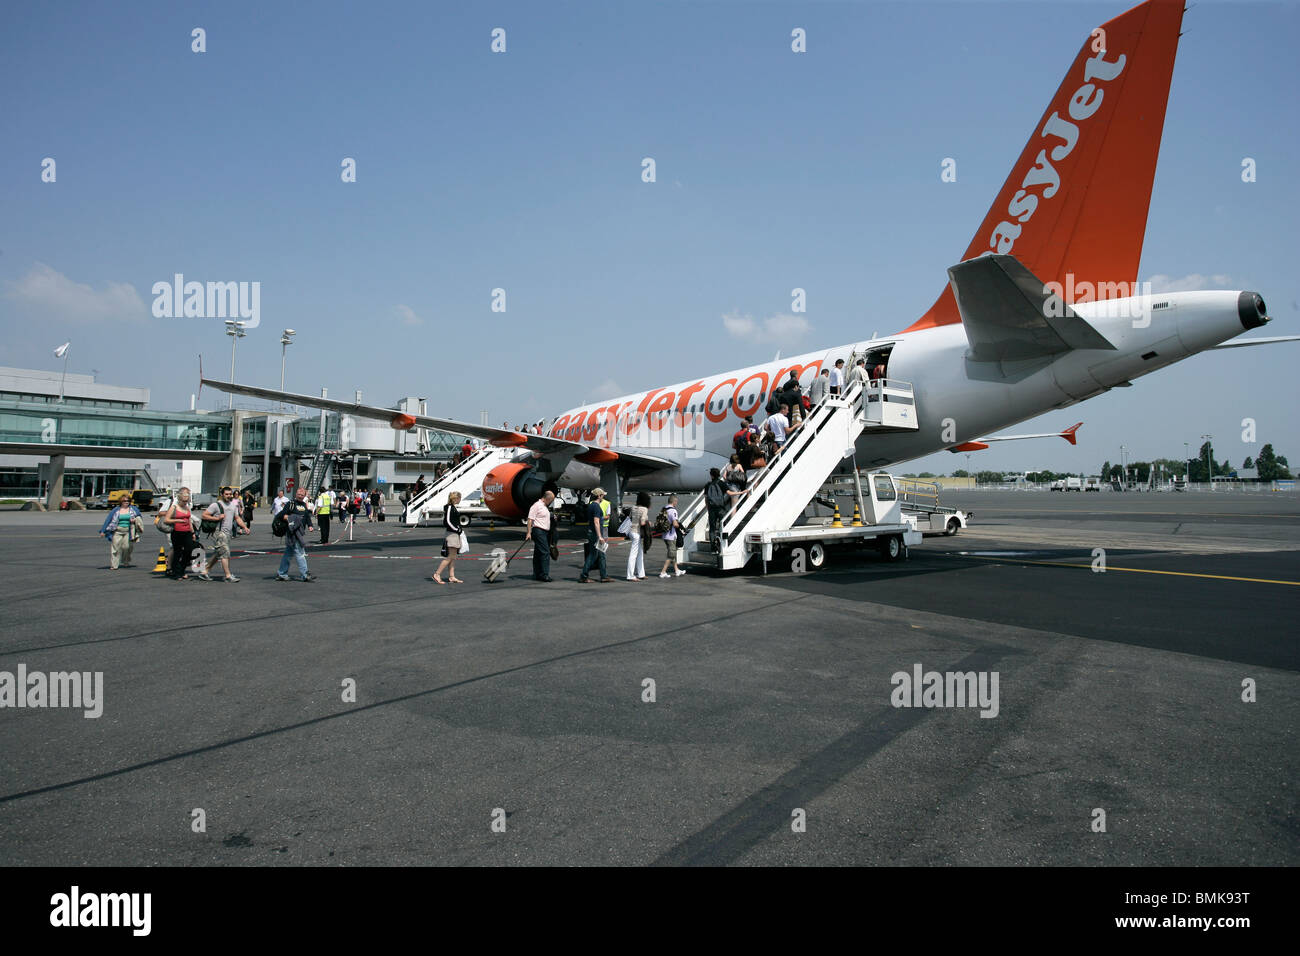 Passengers boarding an airplane - Stock Image